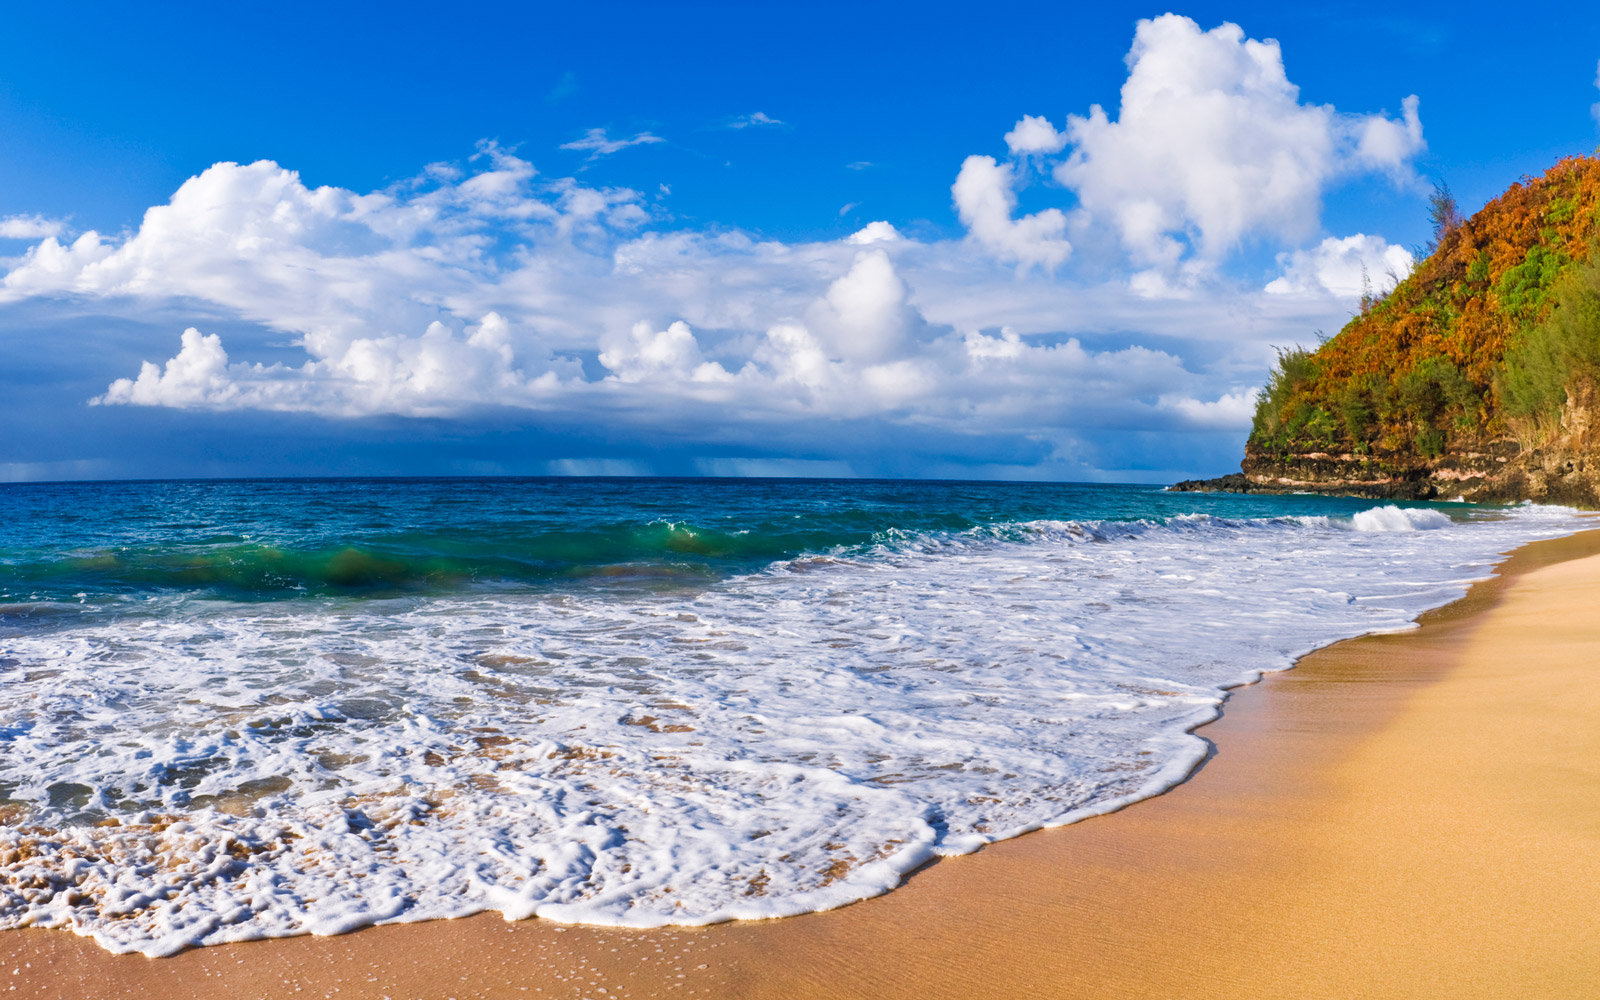 The Na Pali Coast State Park is a 6,175 acres (2,499 ha) Hawaiian state park located in the center of the rugged 16 miles (26 km) along the northwest side of Kauai, the oldest inhabited Hawaiian island. The Na Pali coast itself extends southwest starting